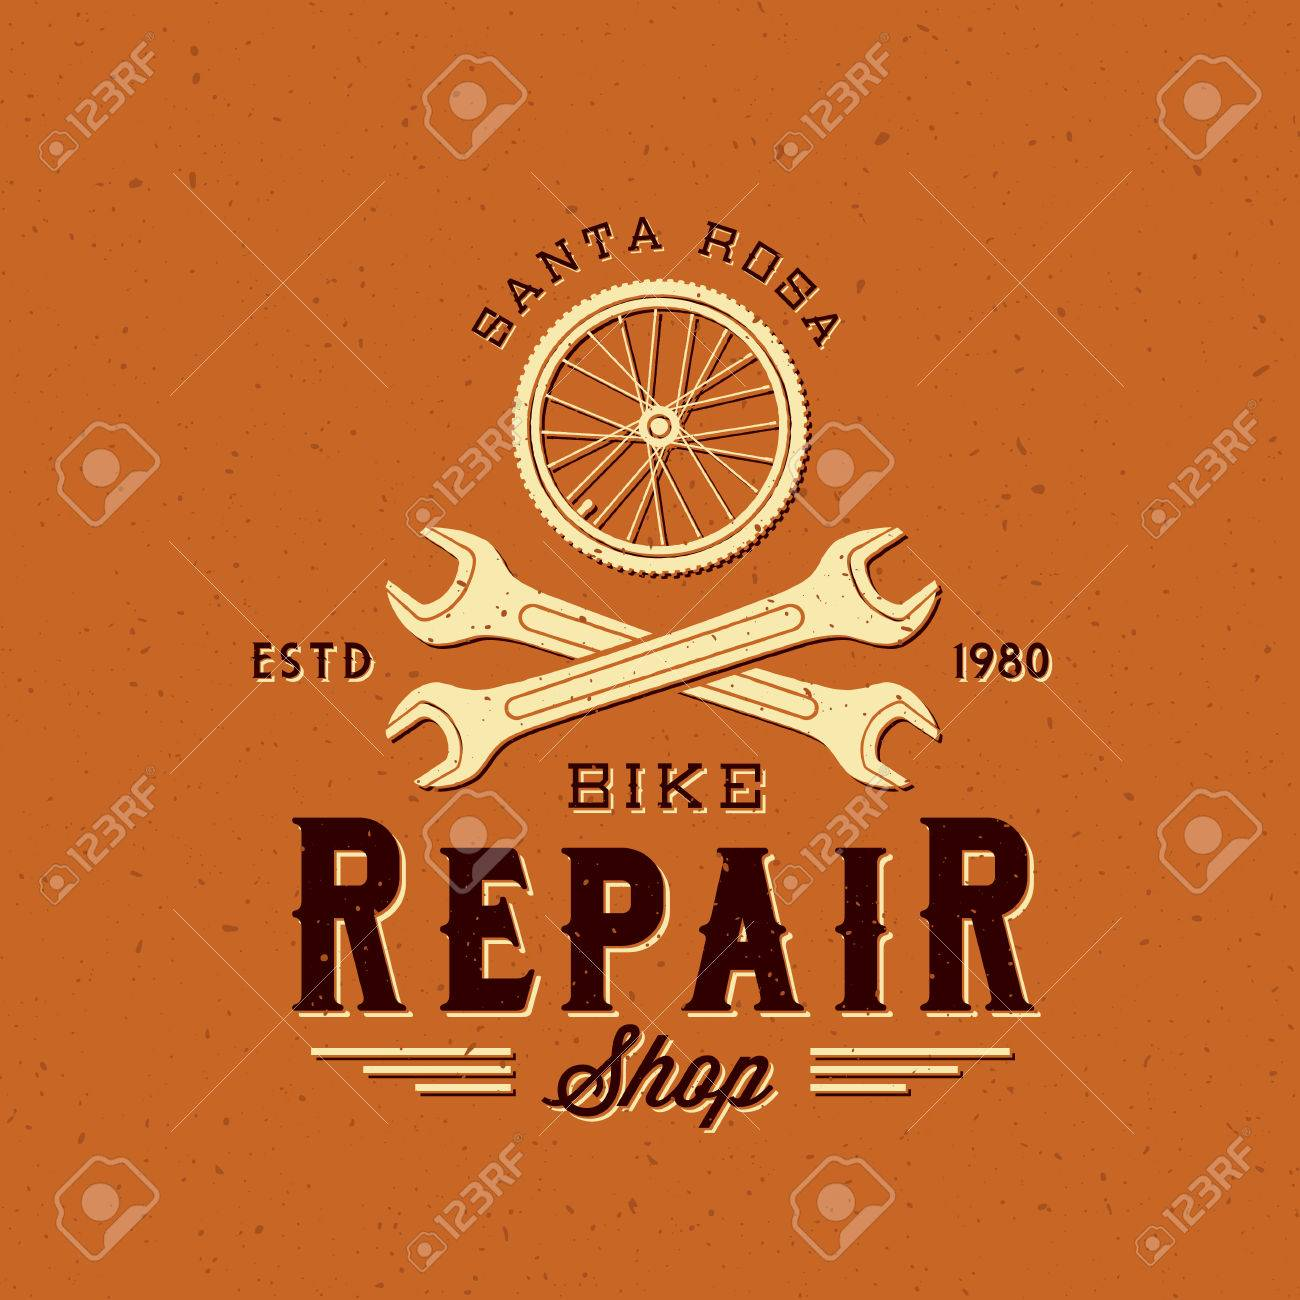 Retro Bycicle Repair Vector Label or Logo Template - 39318777